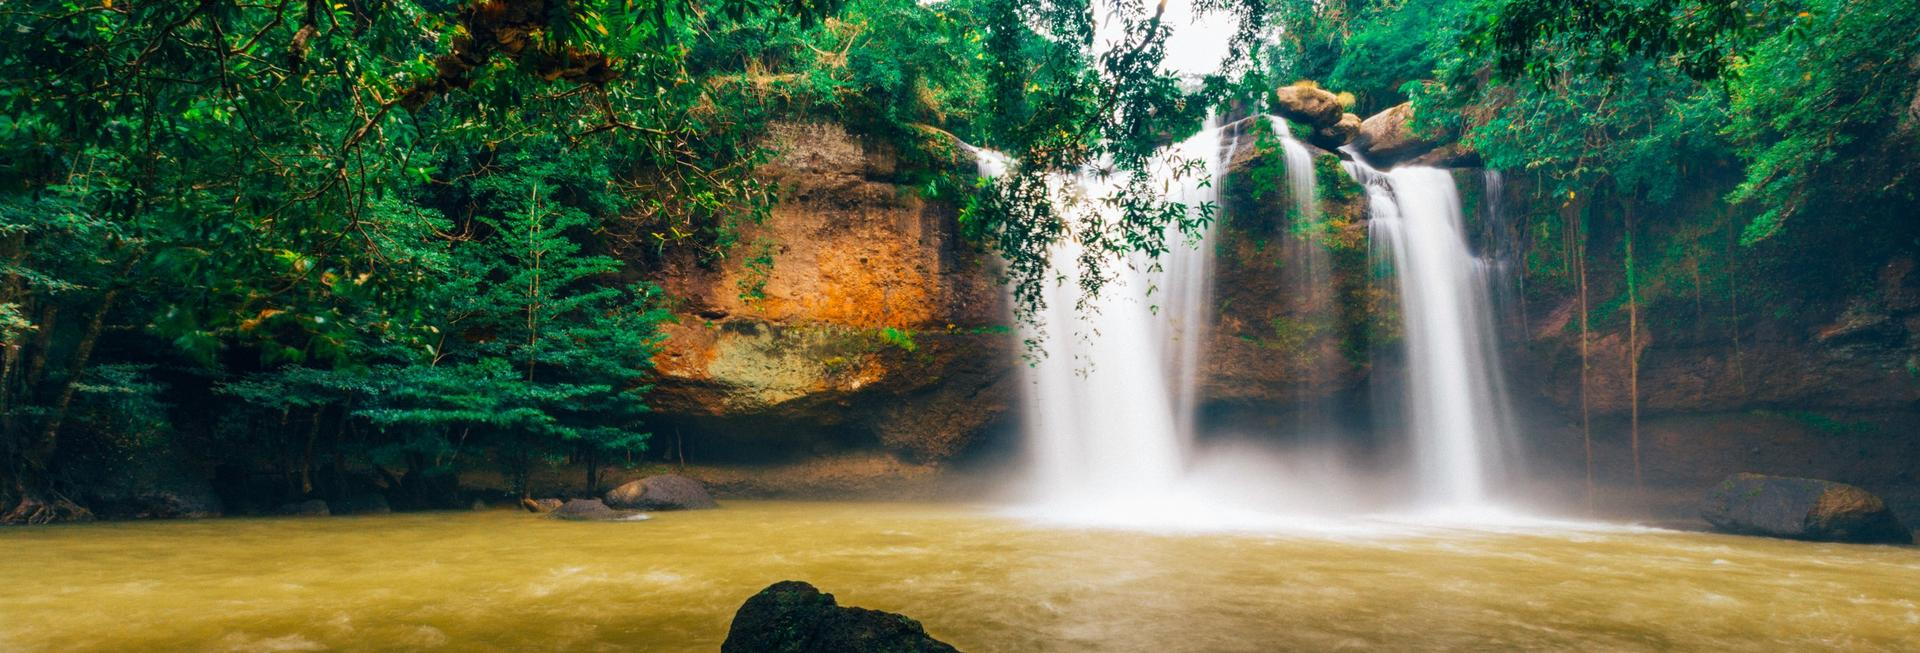 Haew Suwat Waterfall, Khao Yai National Park